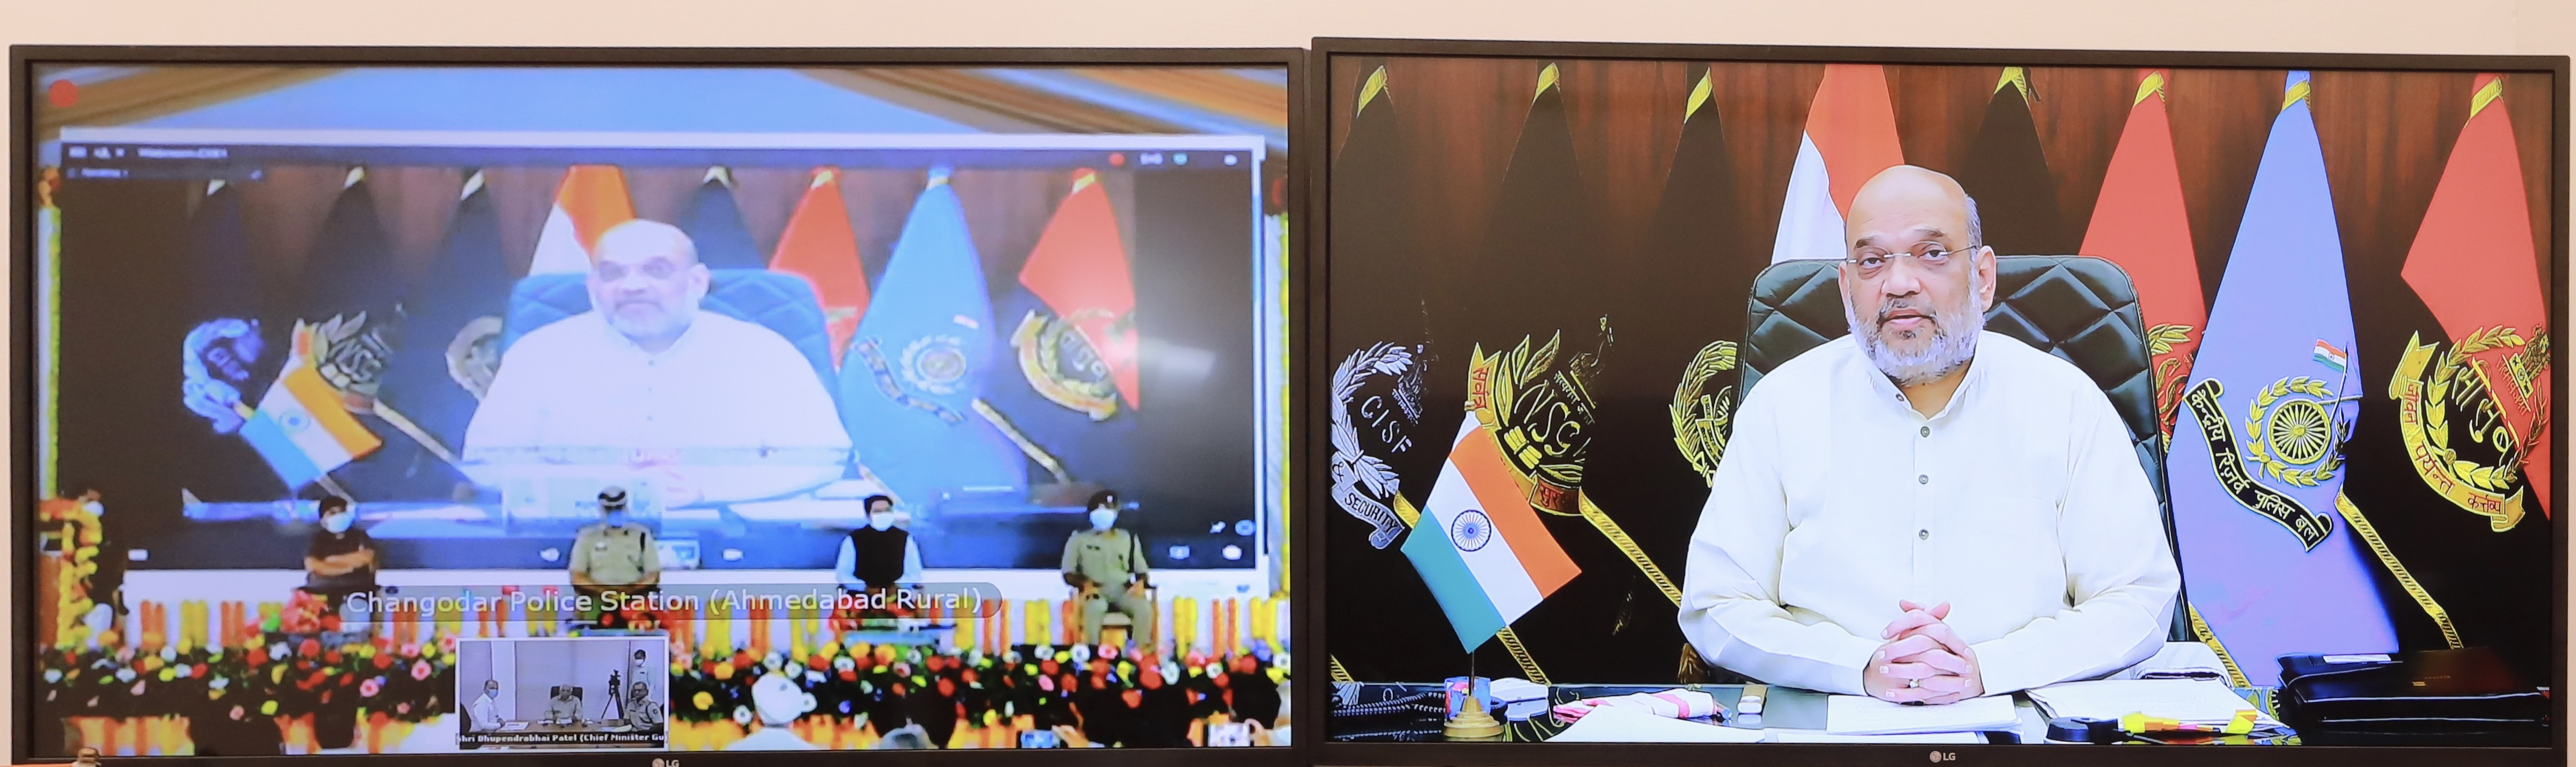 Shri Amit Shah inaugurated new police stations, police buildings and launched SHE TEAM and SETU applications in Ahmedabad